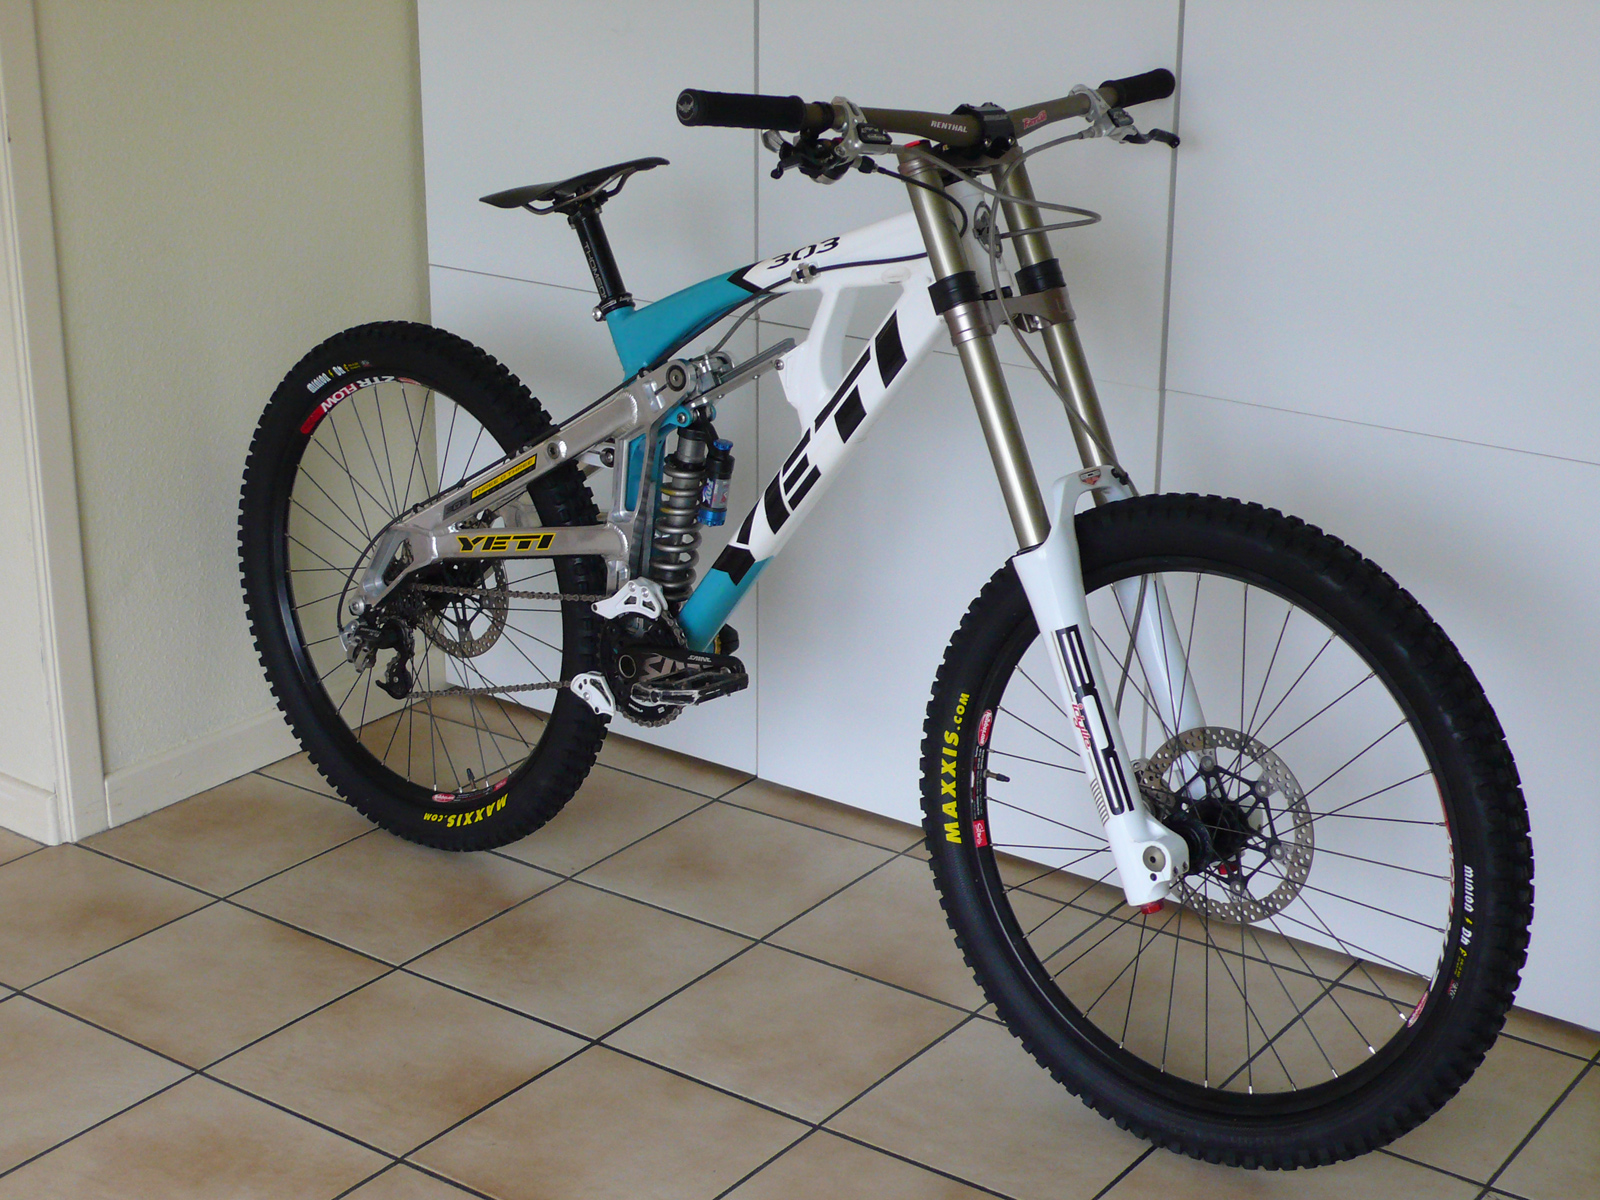 Sexiest Downhill Bikes Frames Out There 2 No Posting Of Own Bike